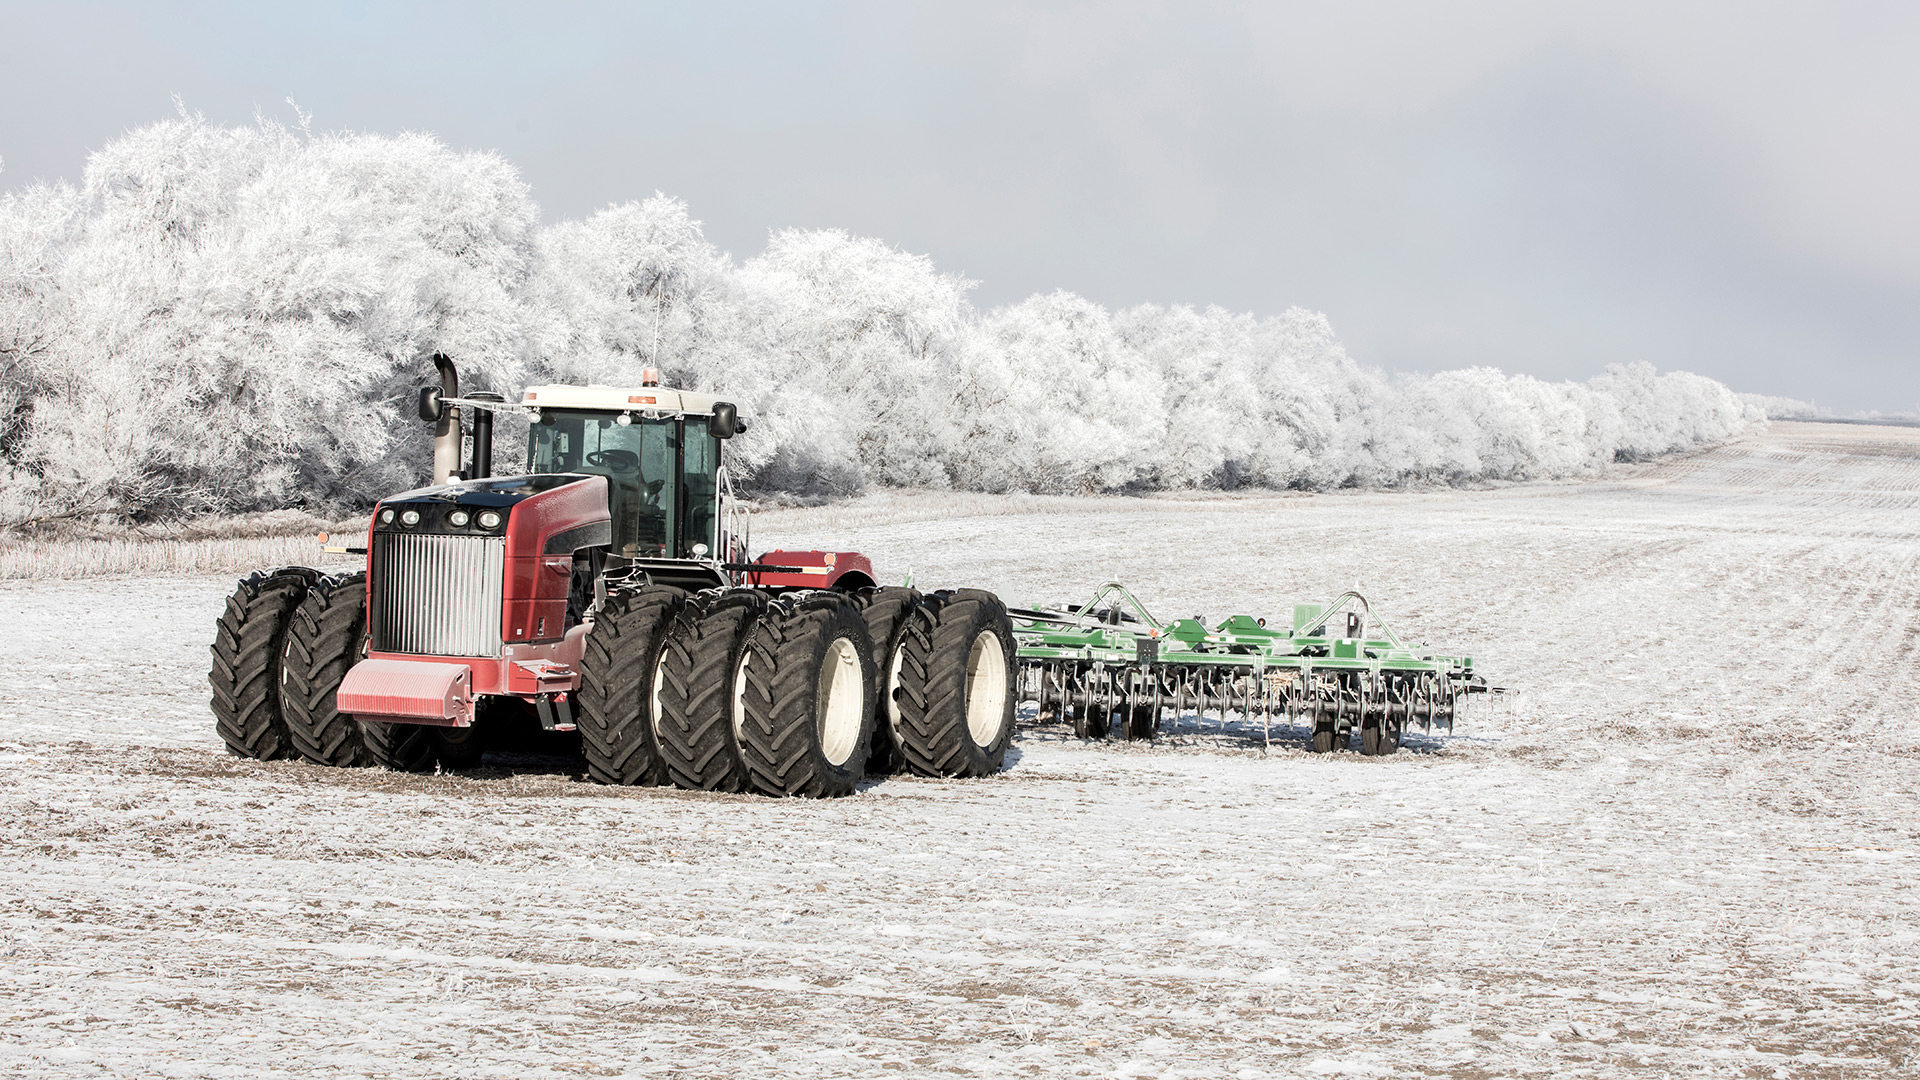 A combine harvester moving on a snow-covered field